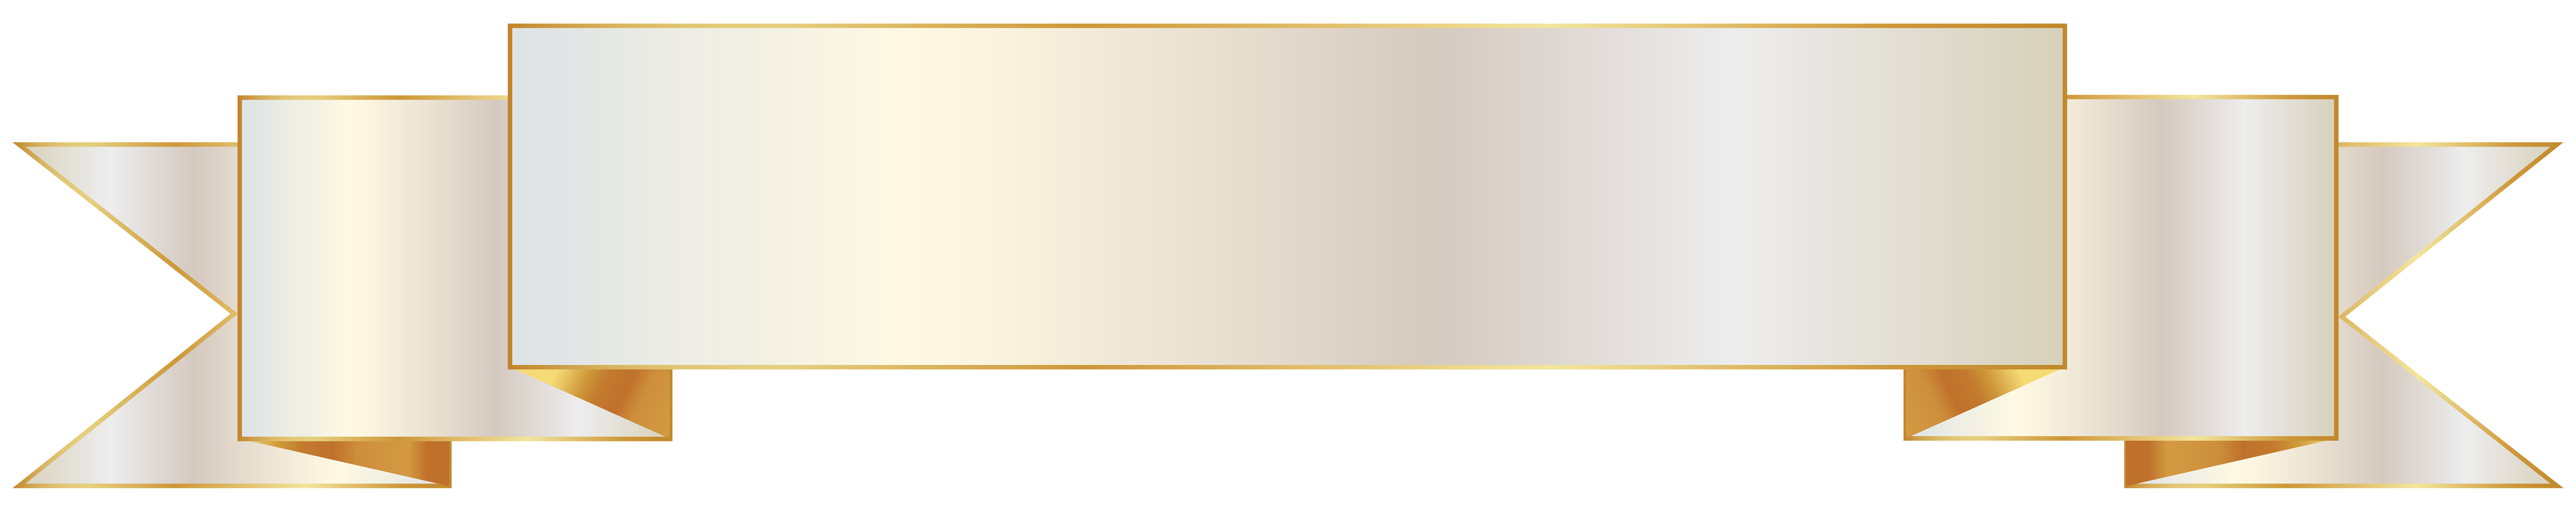 And gold png image. White clipart banner